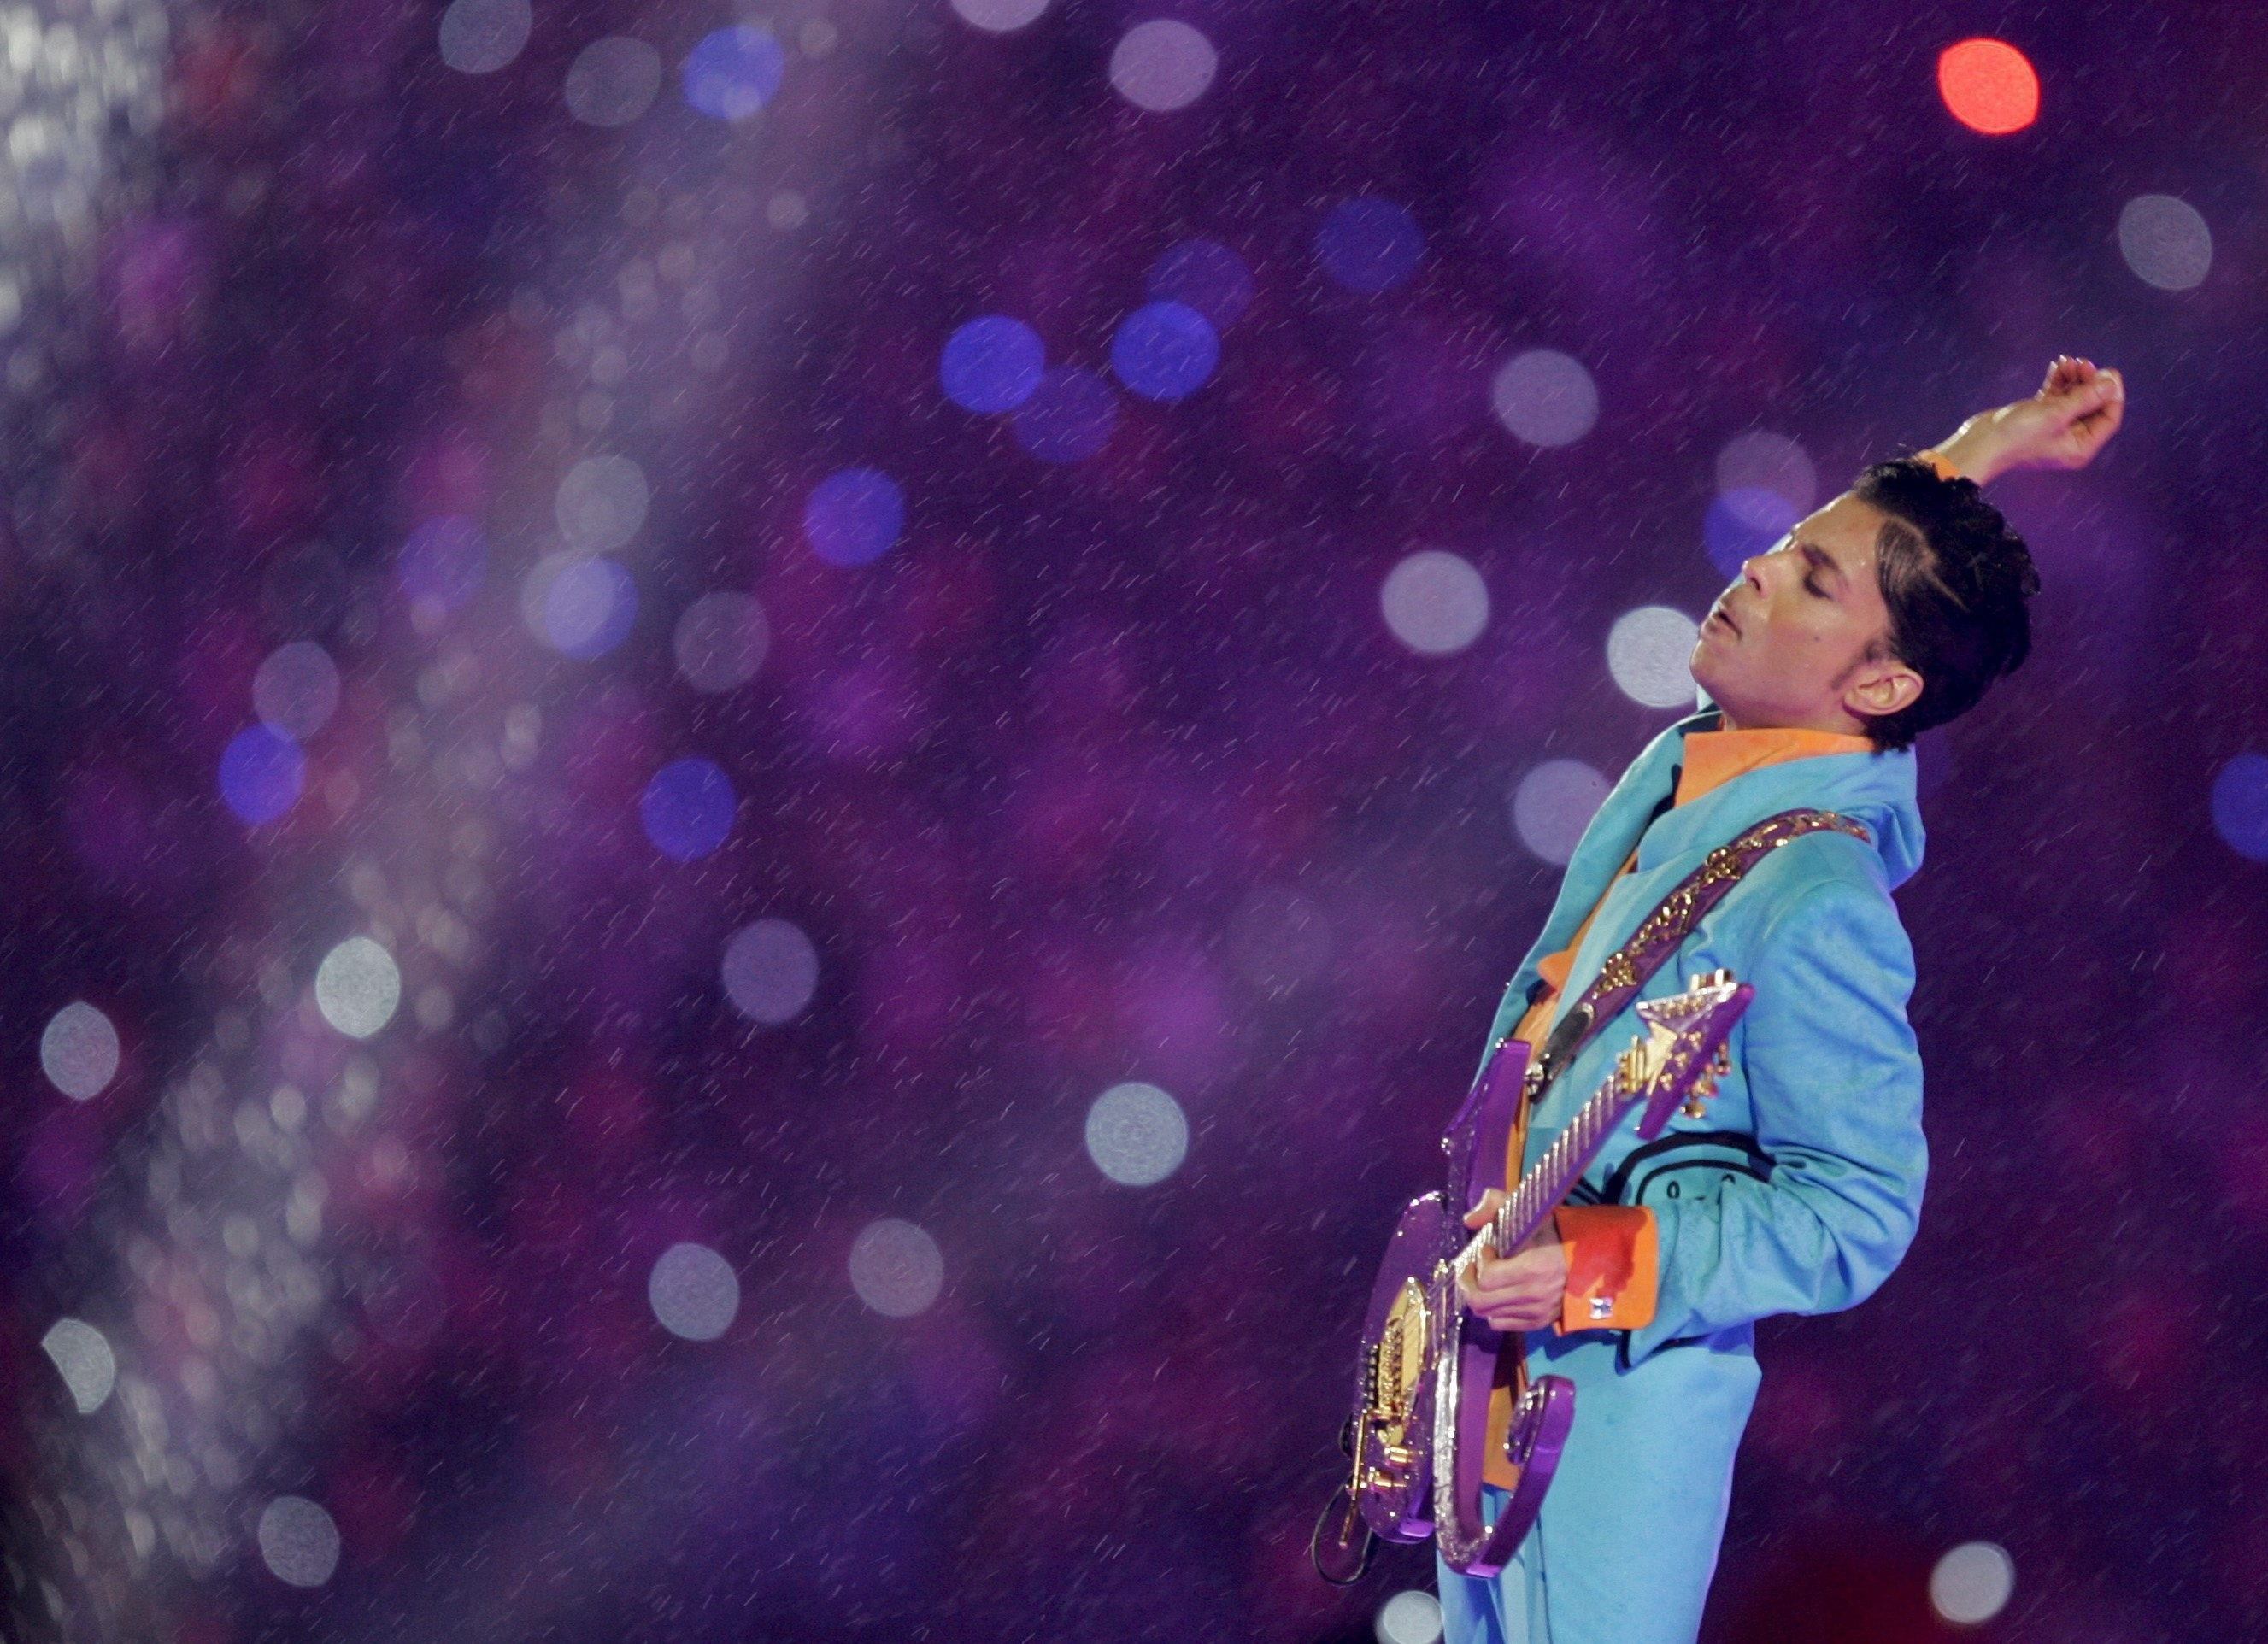 Greatest Super Bowl Halftime Show Ever, And More Prince with regard to Purple Rain Super Bowl